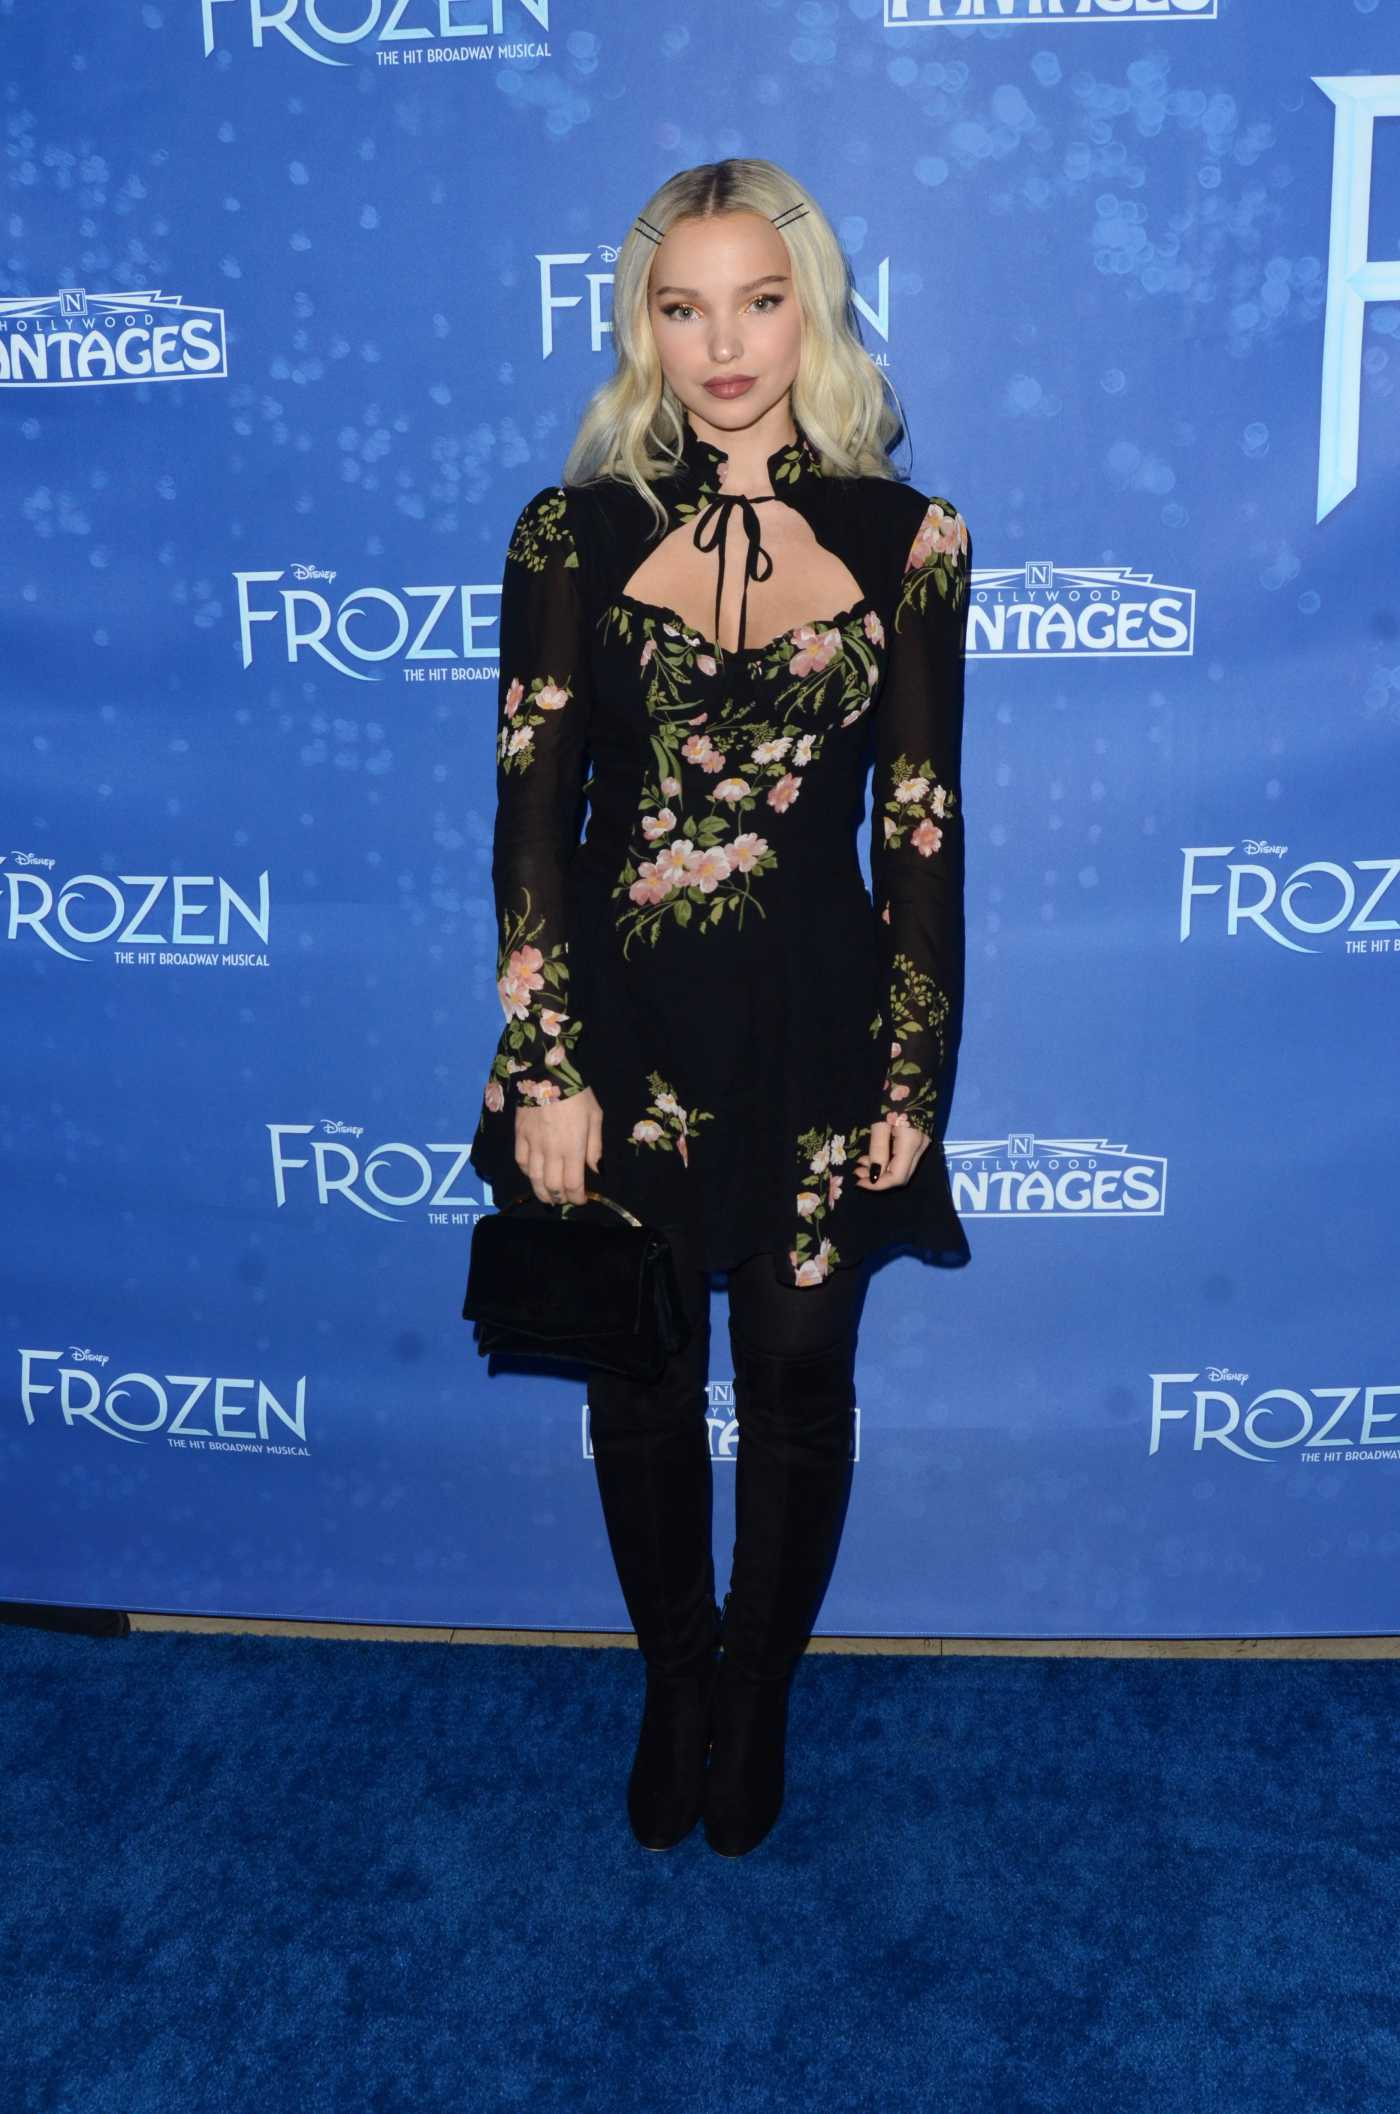 Dove Cameron Attends the Frozen Premiere at the Hollywood Pantages Theatre in Hollywood 12/06/2019